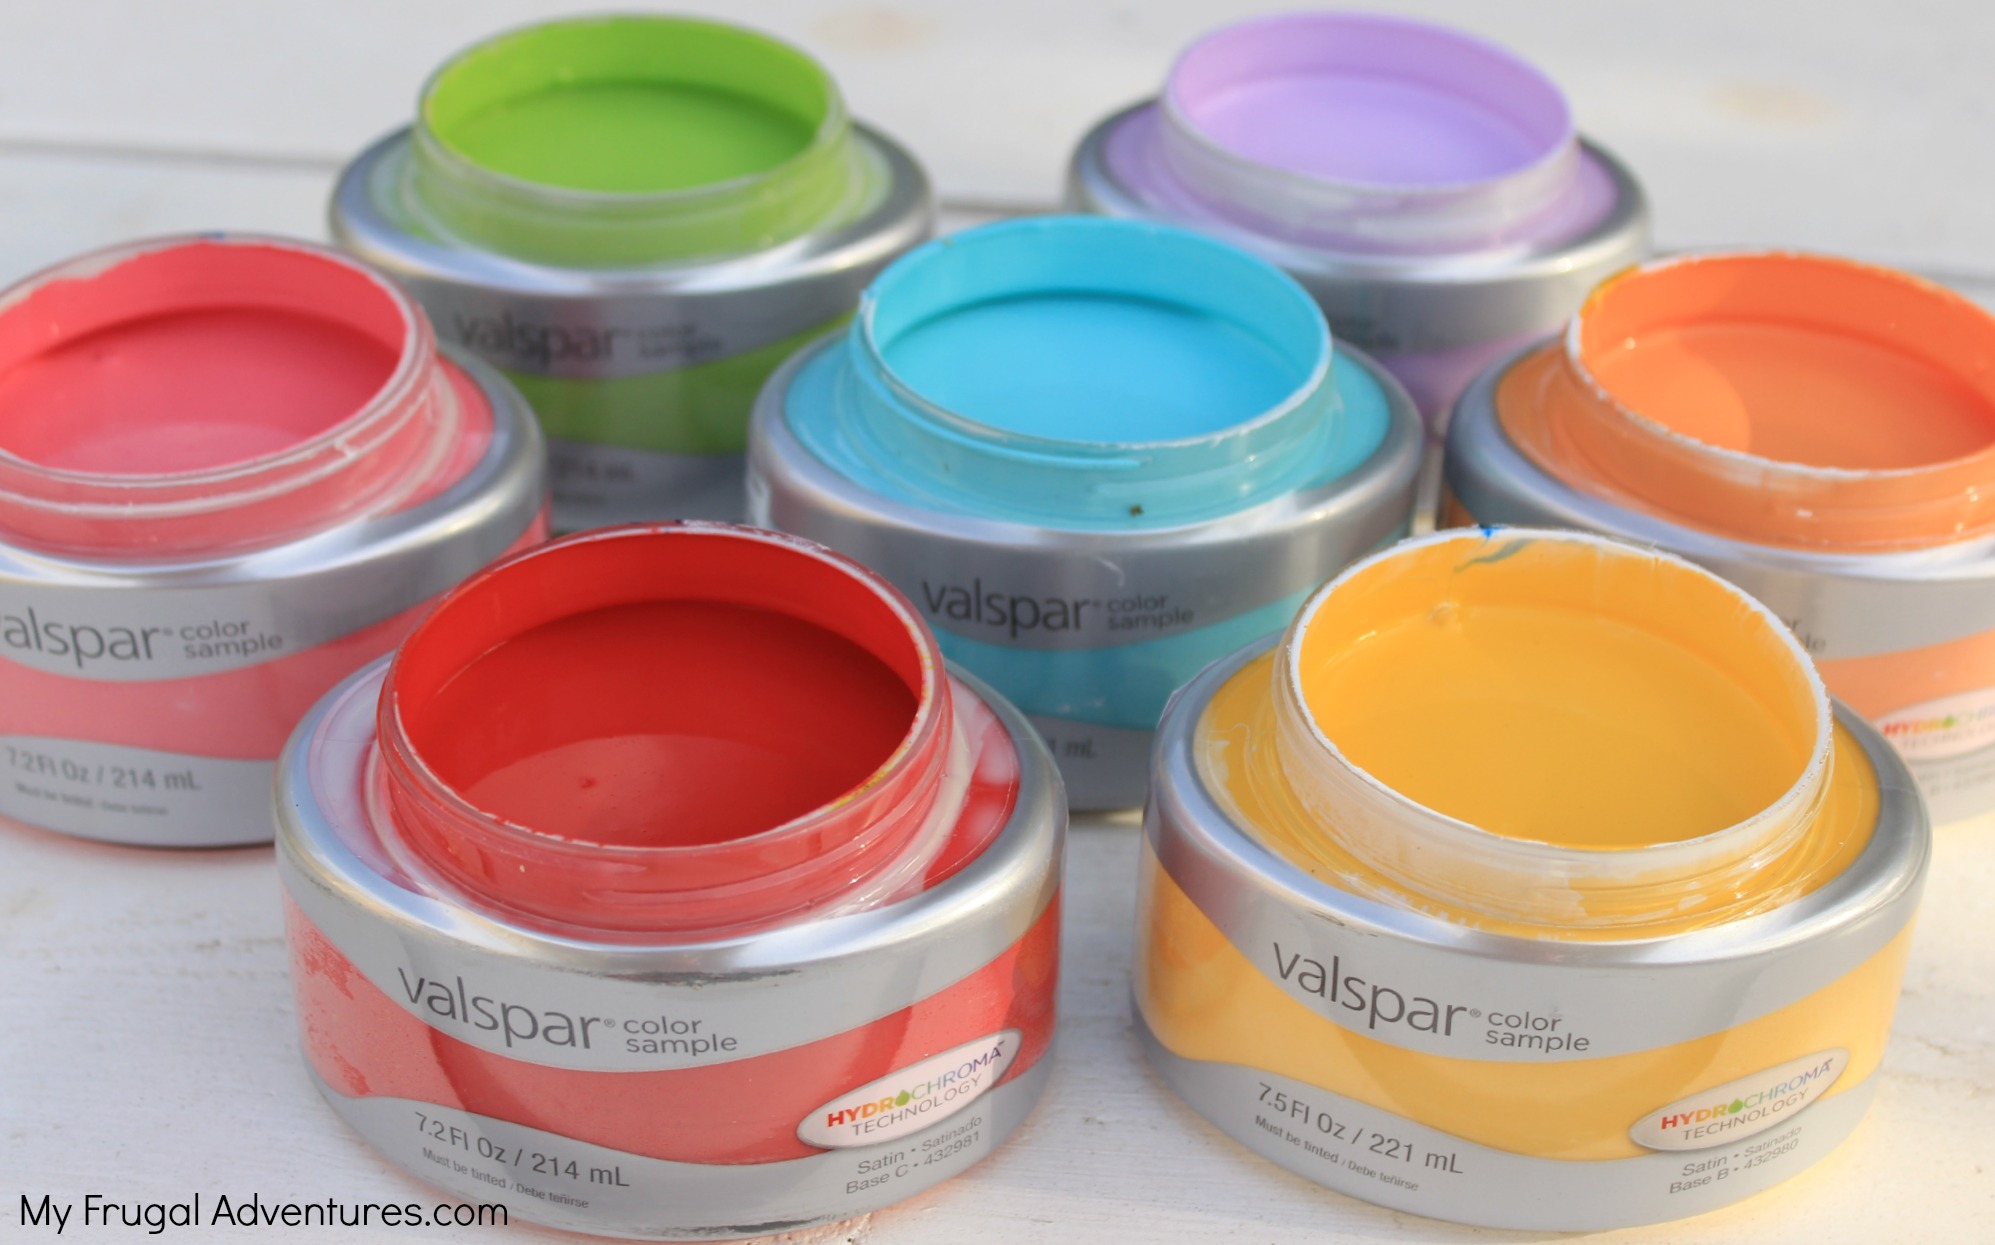 Valspar Kitchen Cabinet Paint | Valspar Paint Dealers | Valspar Paint